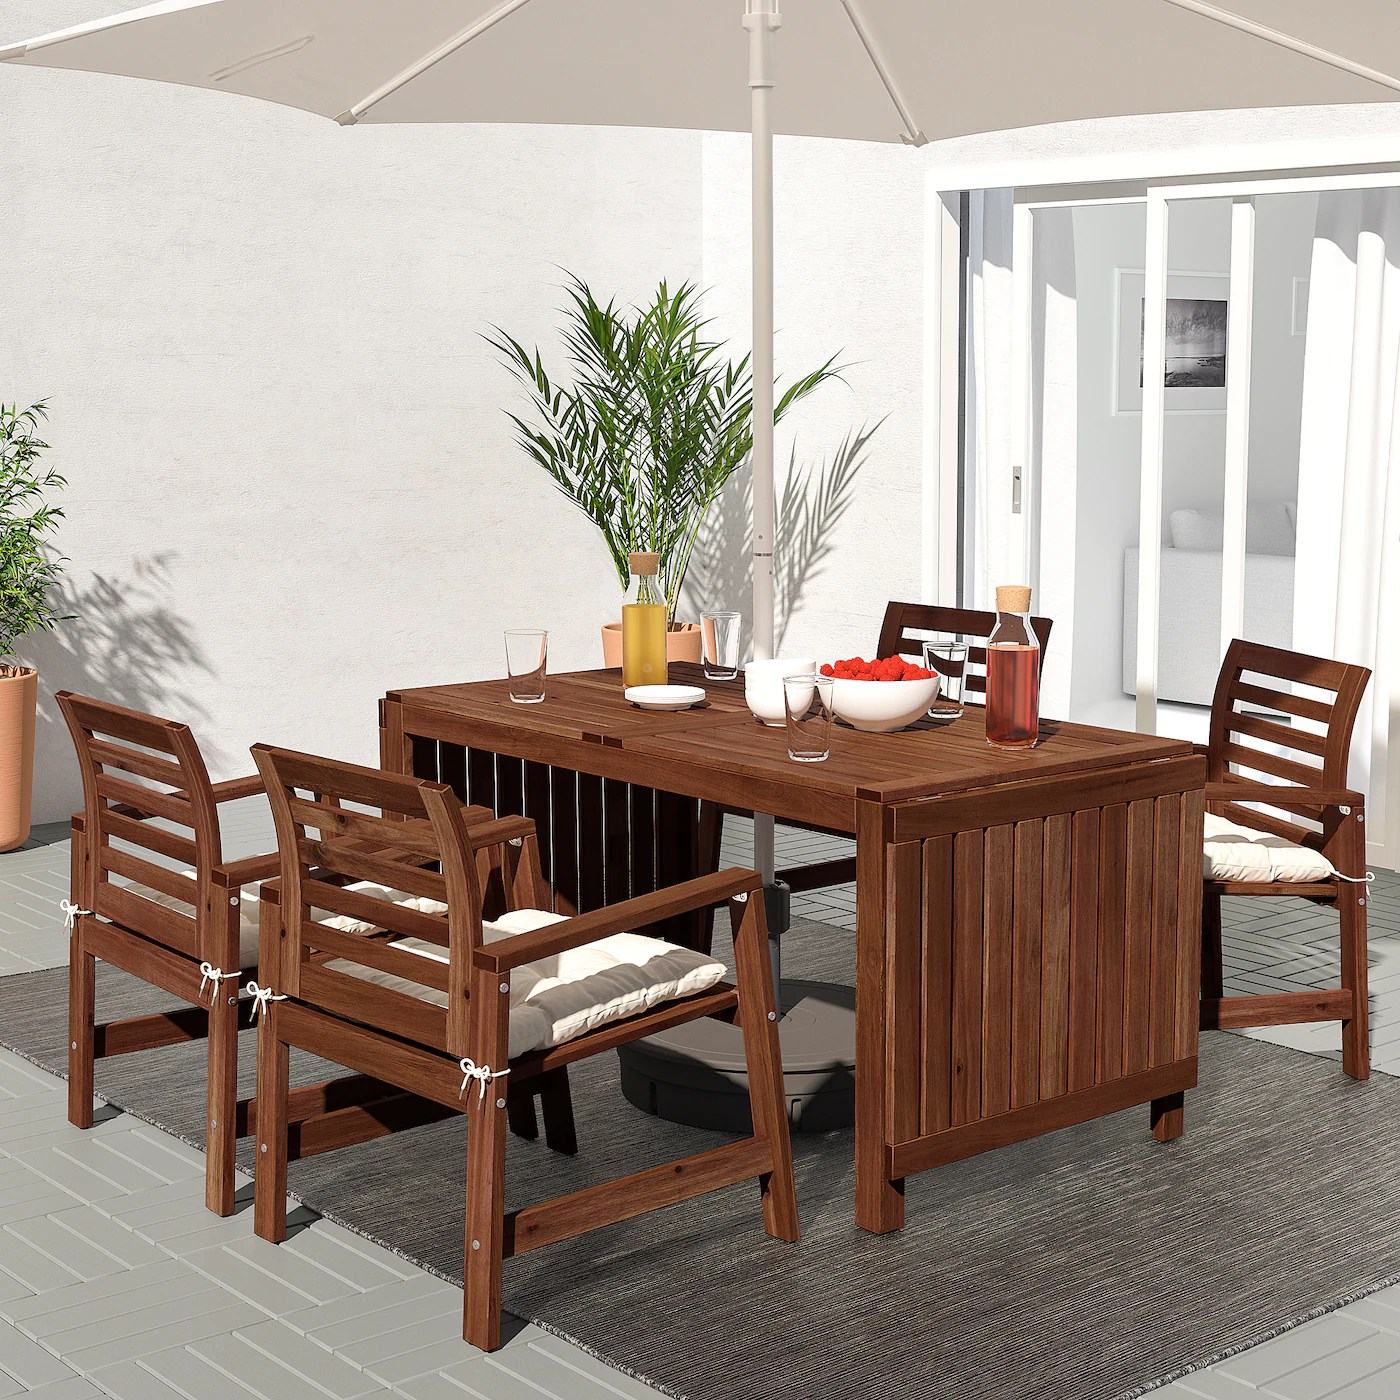 Applaro Chair With Armrests Outdoor Brown Stained Ikea